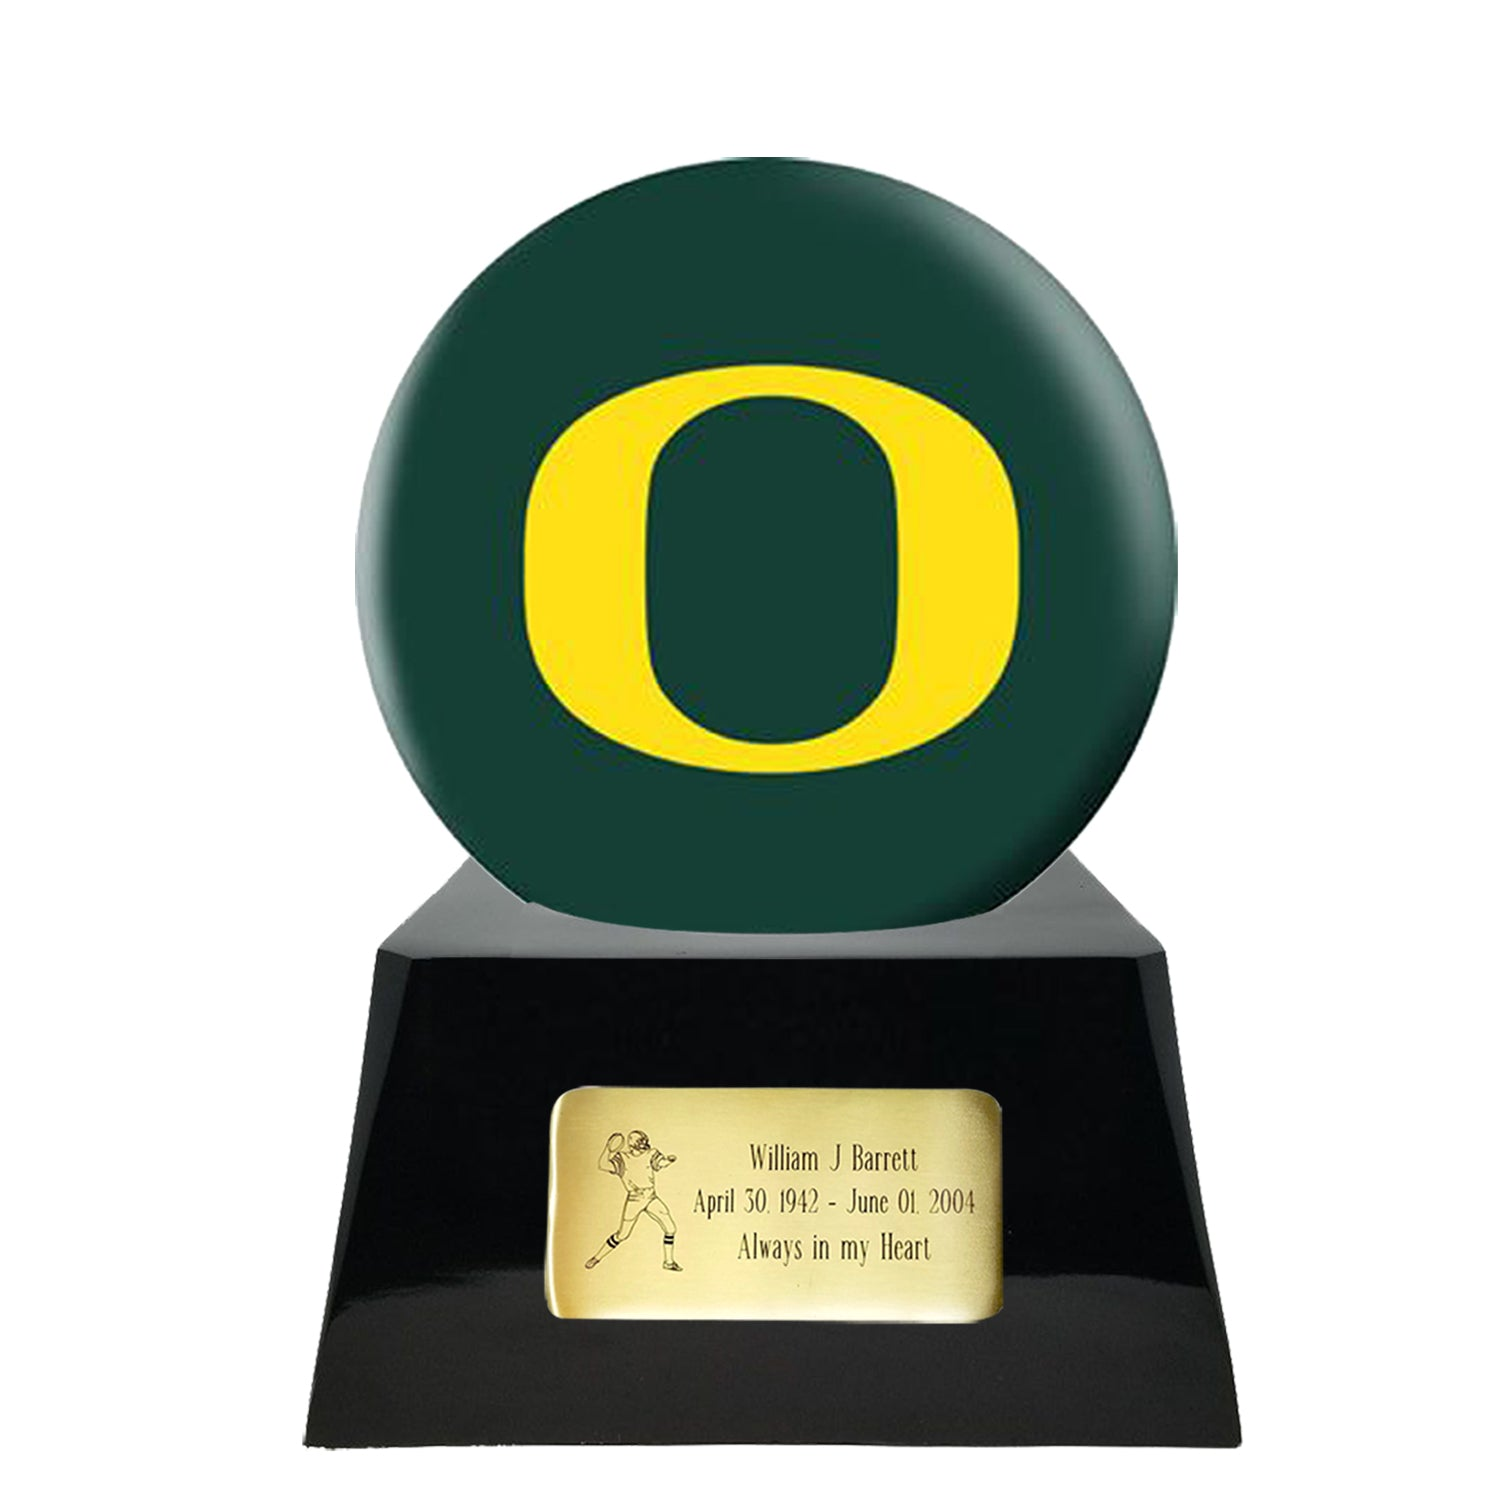 Football Cremation Urn and Oregon Ducks Ball Decor with Custom Metal Plaque, Football Team Urns - Divinity Urns